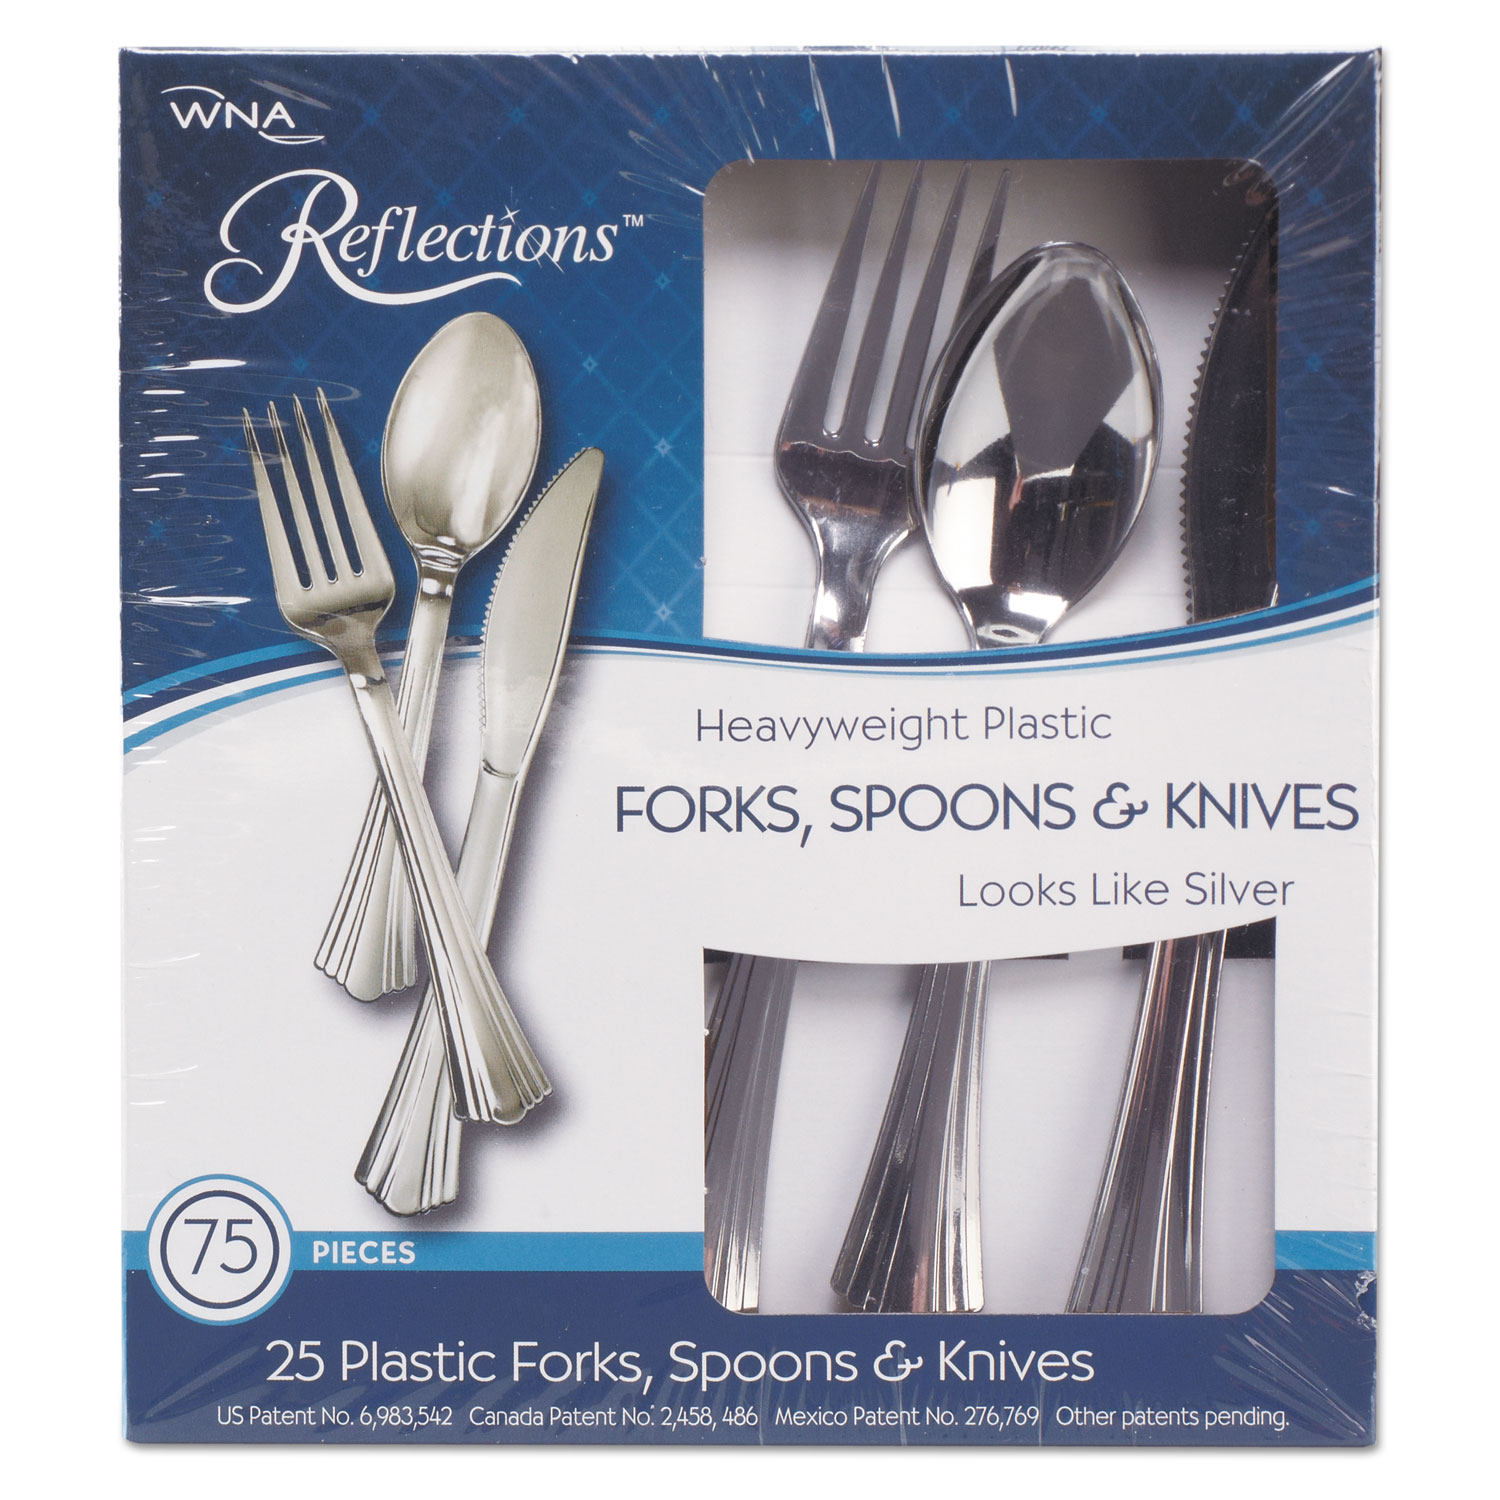 Heavyweight Plastic Cutlery Combo: Fork, Knife, Spoon